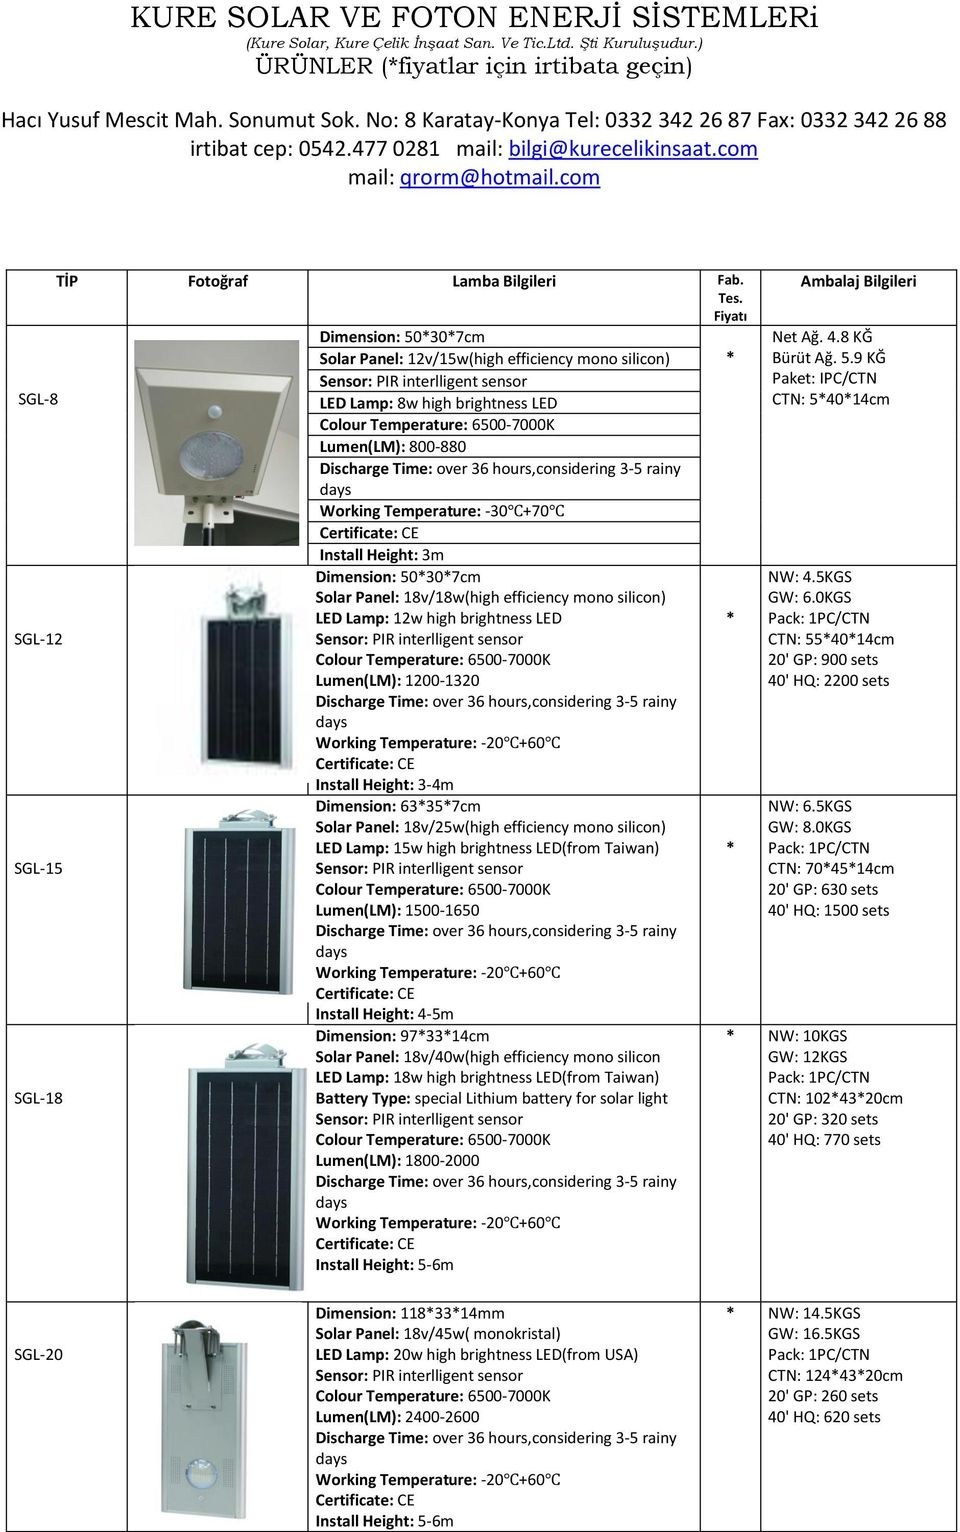 hours,considering 3-5 rainy Working Temperature: -30 +70 Install Height: 3m Dimension: 50307cm Solar Panel: 18v/18w(high efficiency mono silicon) LED Lamp: 1w high brightness LED SGL-1 Colour